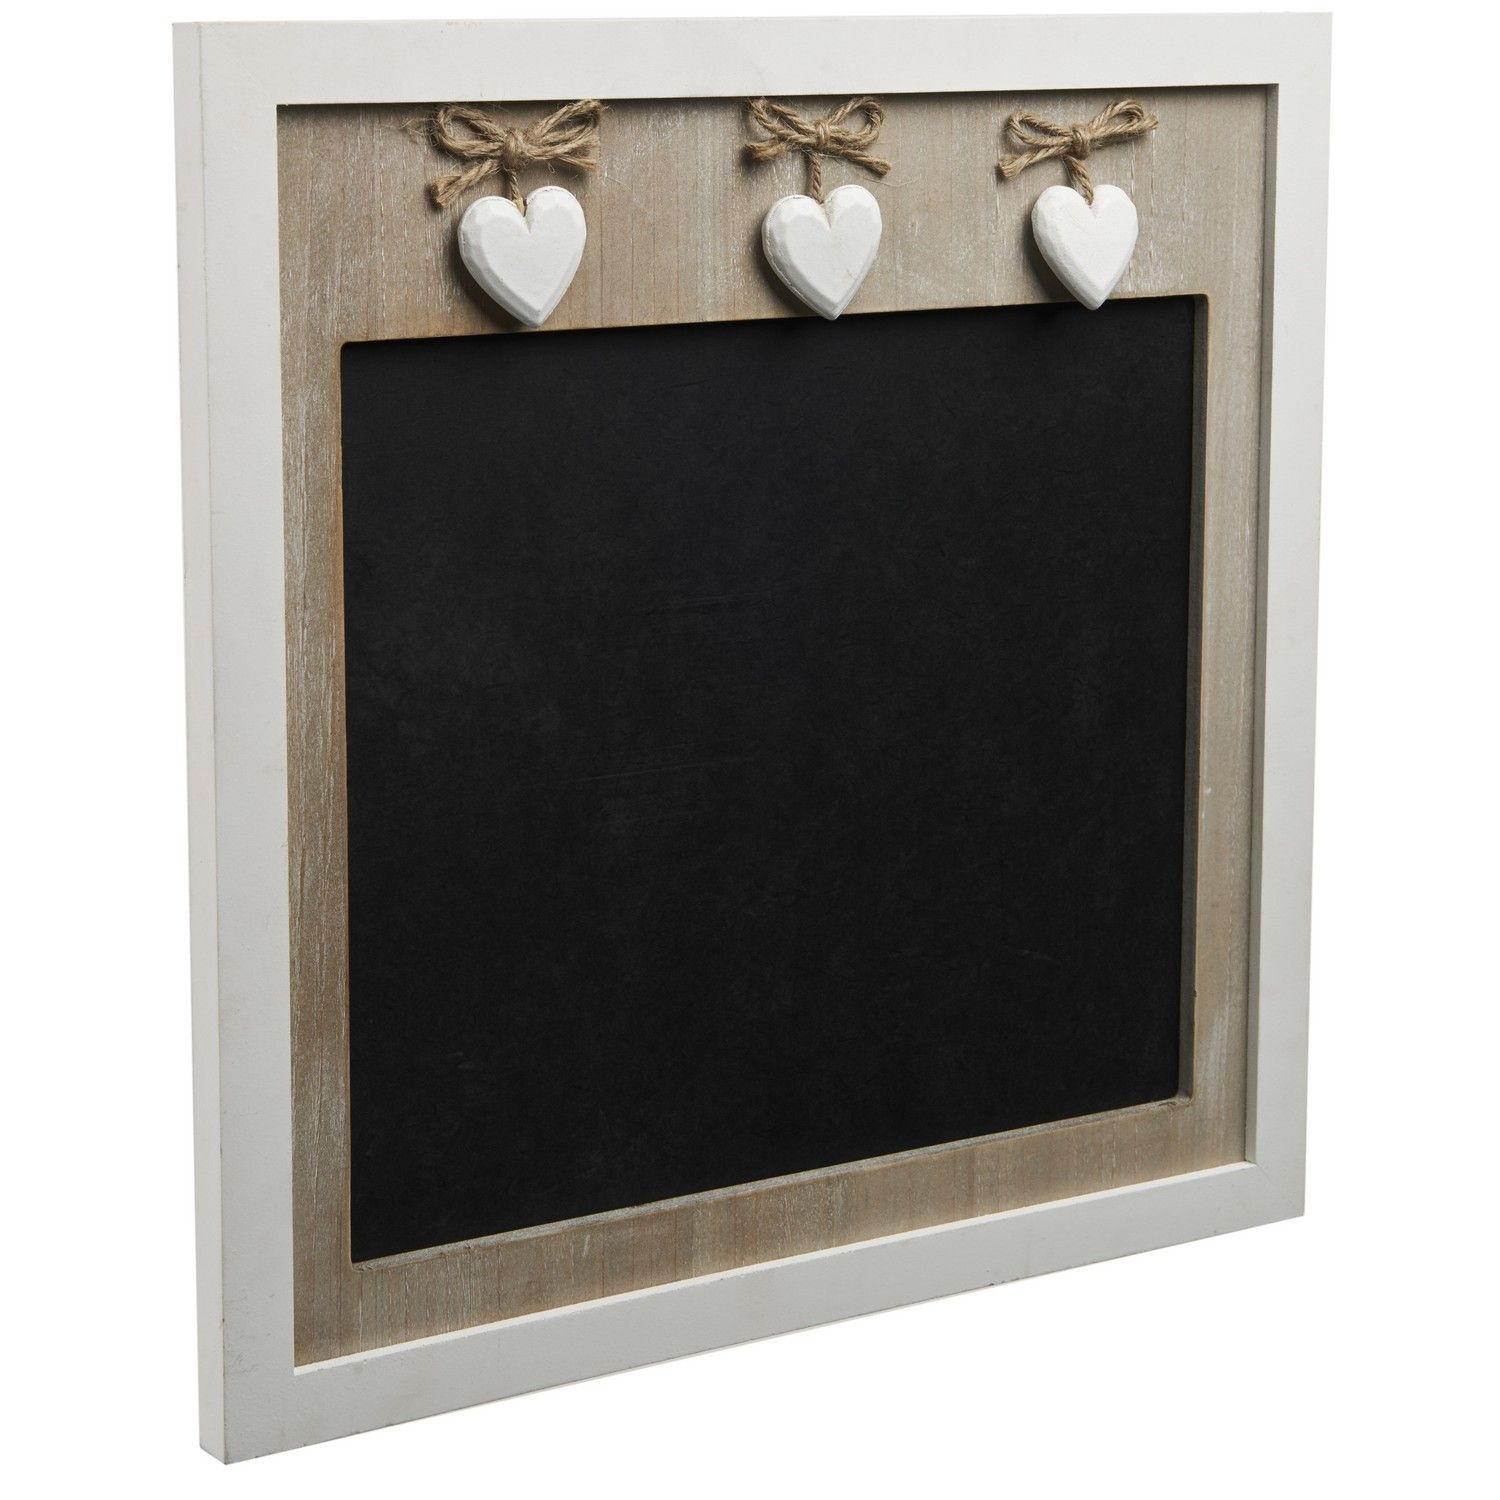 The Hanging Heart Chalkboard Is A Lovely Addition To Any